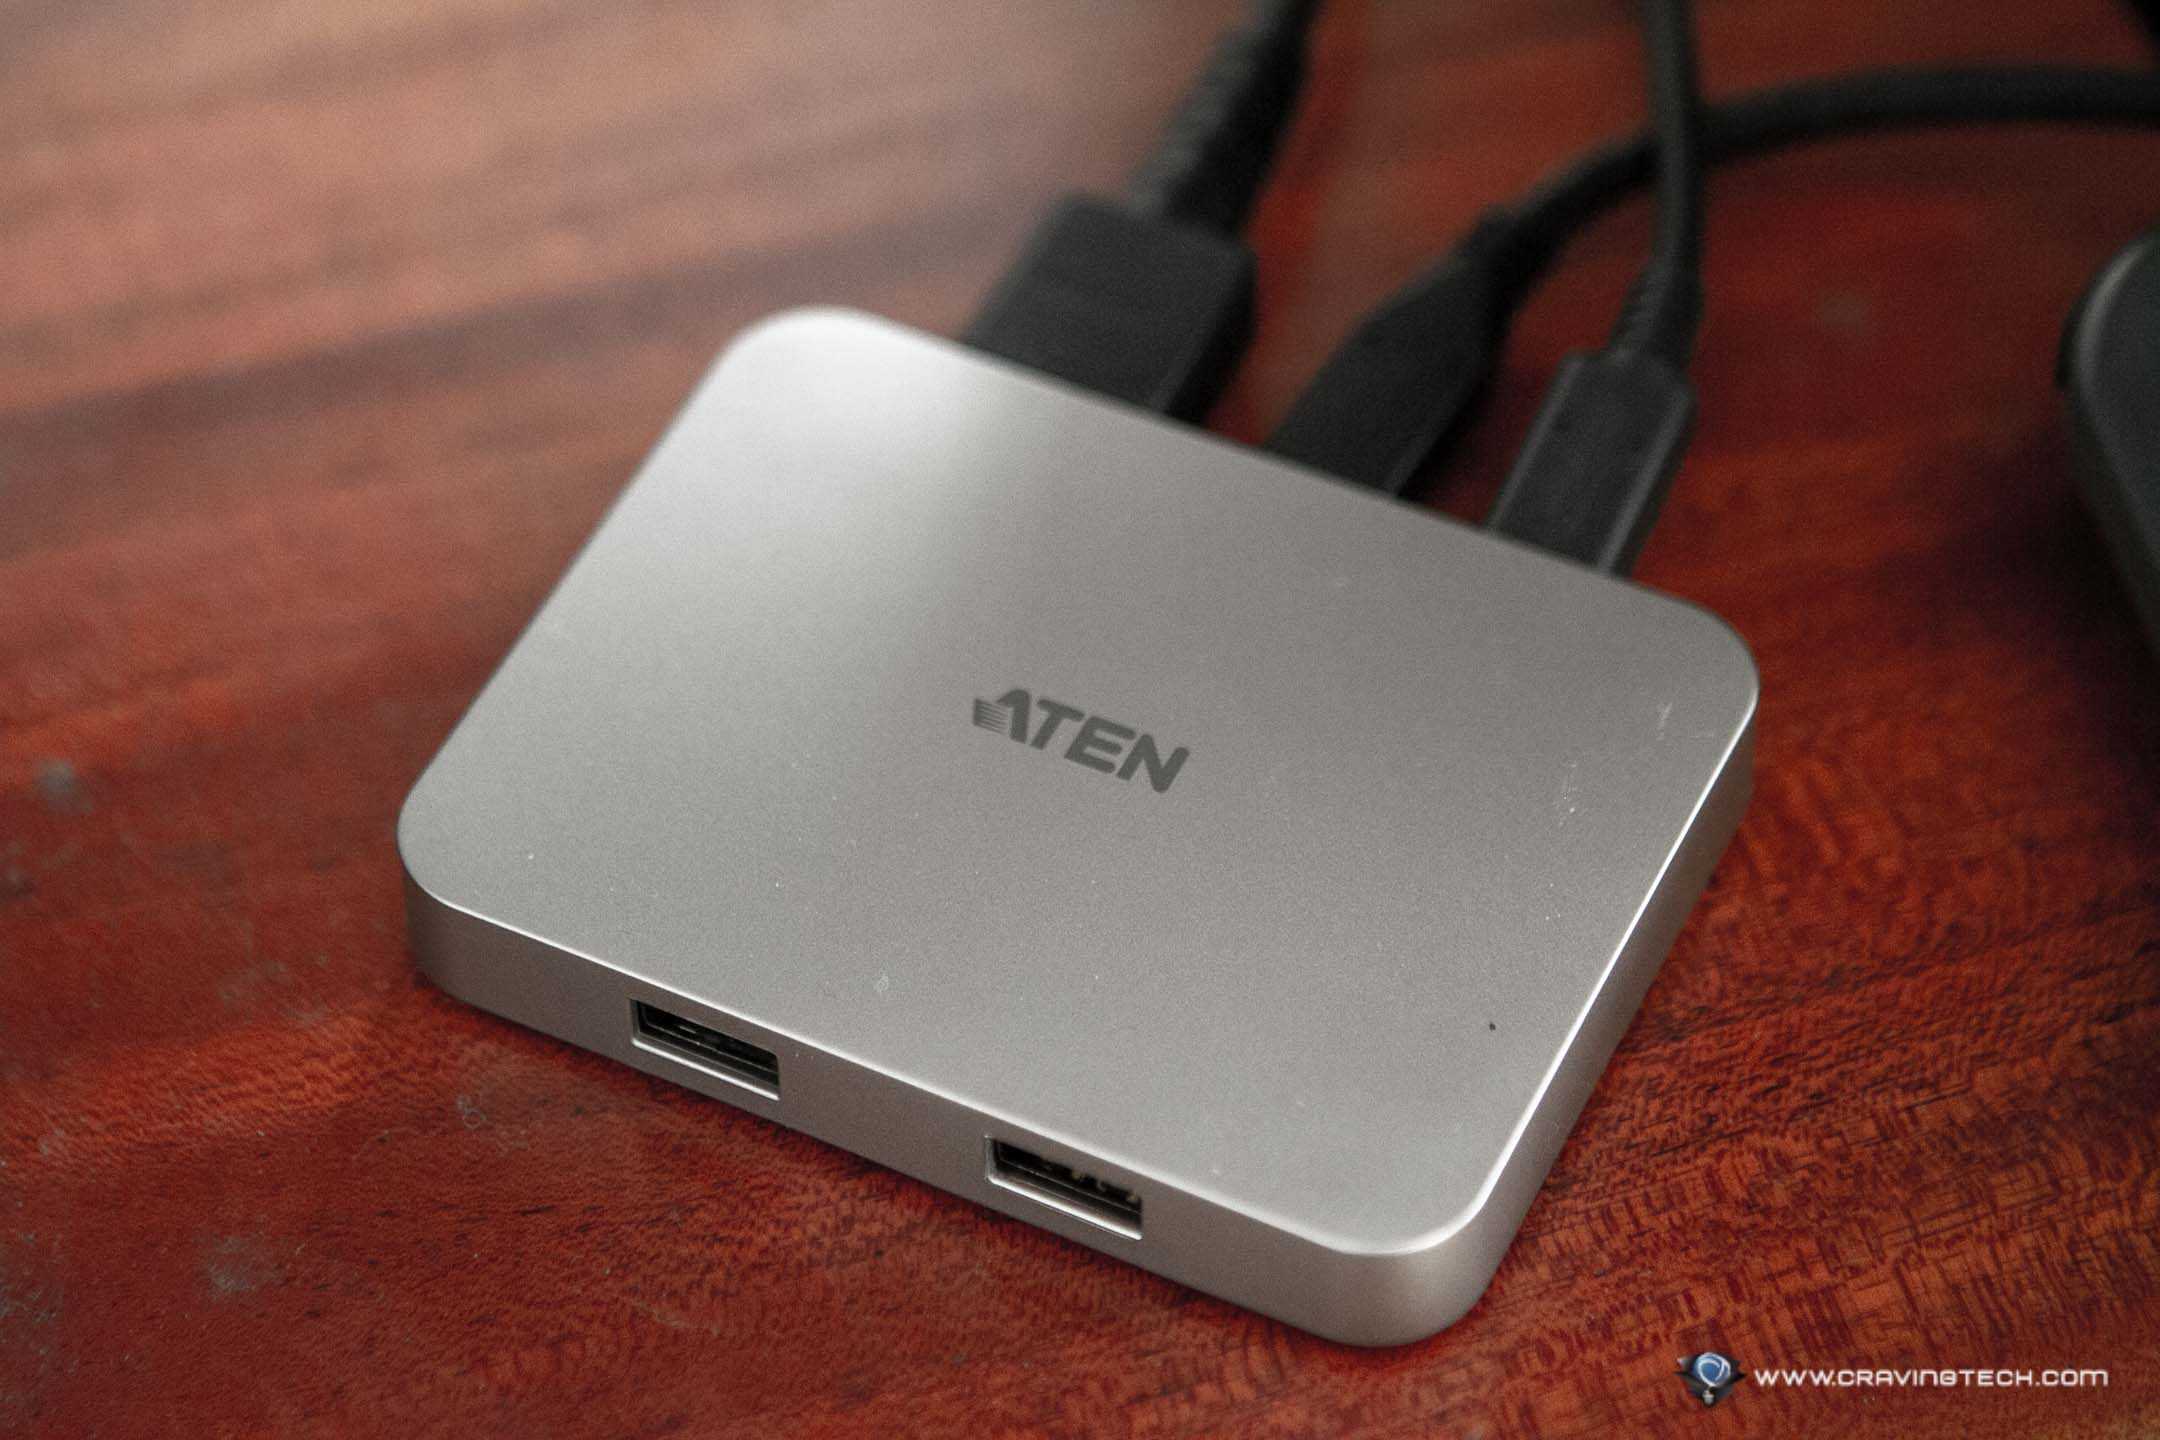 Ditch your Nintendo Switch Dock at home and grab this alternative instead – Aten USB-C 4K Ultra Mini Dock with Power Pass-through Review